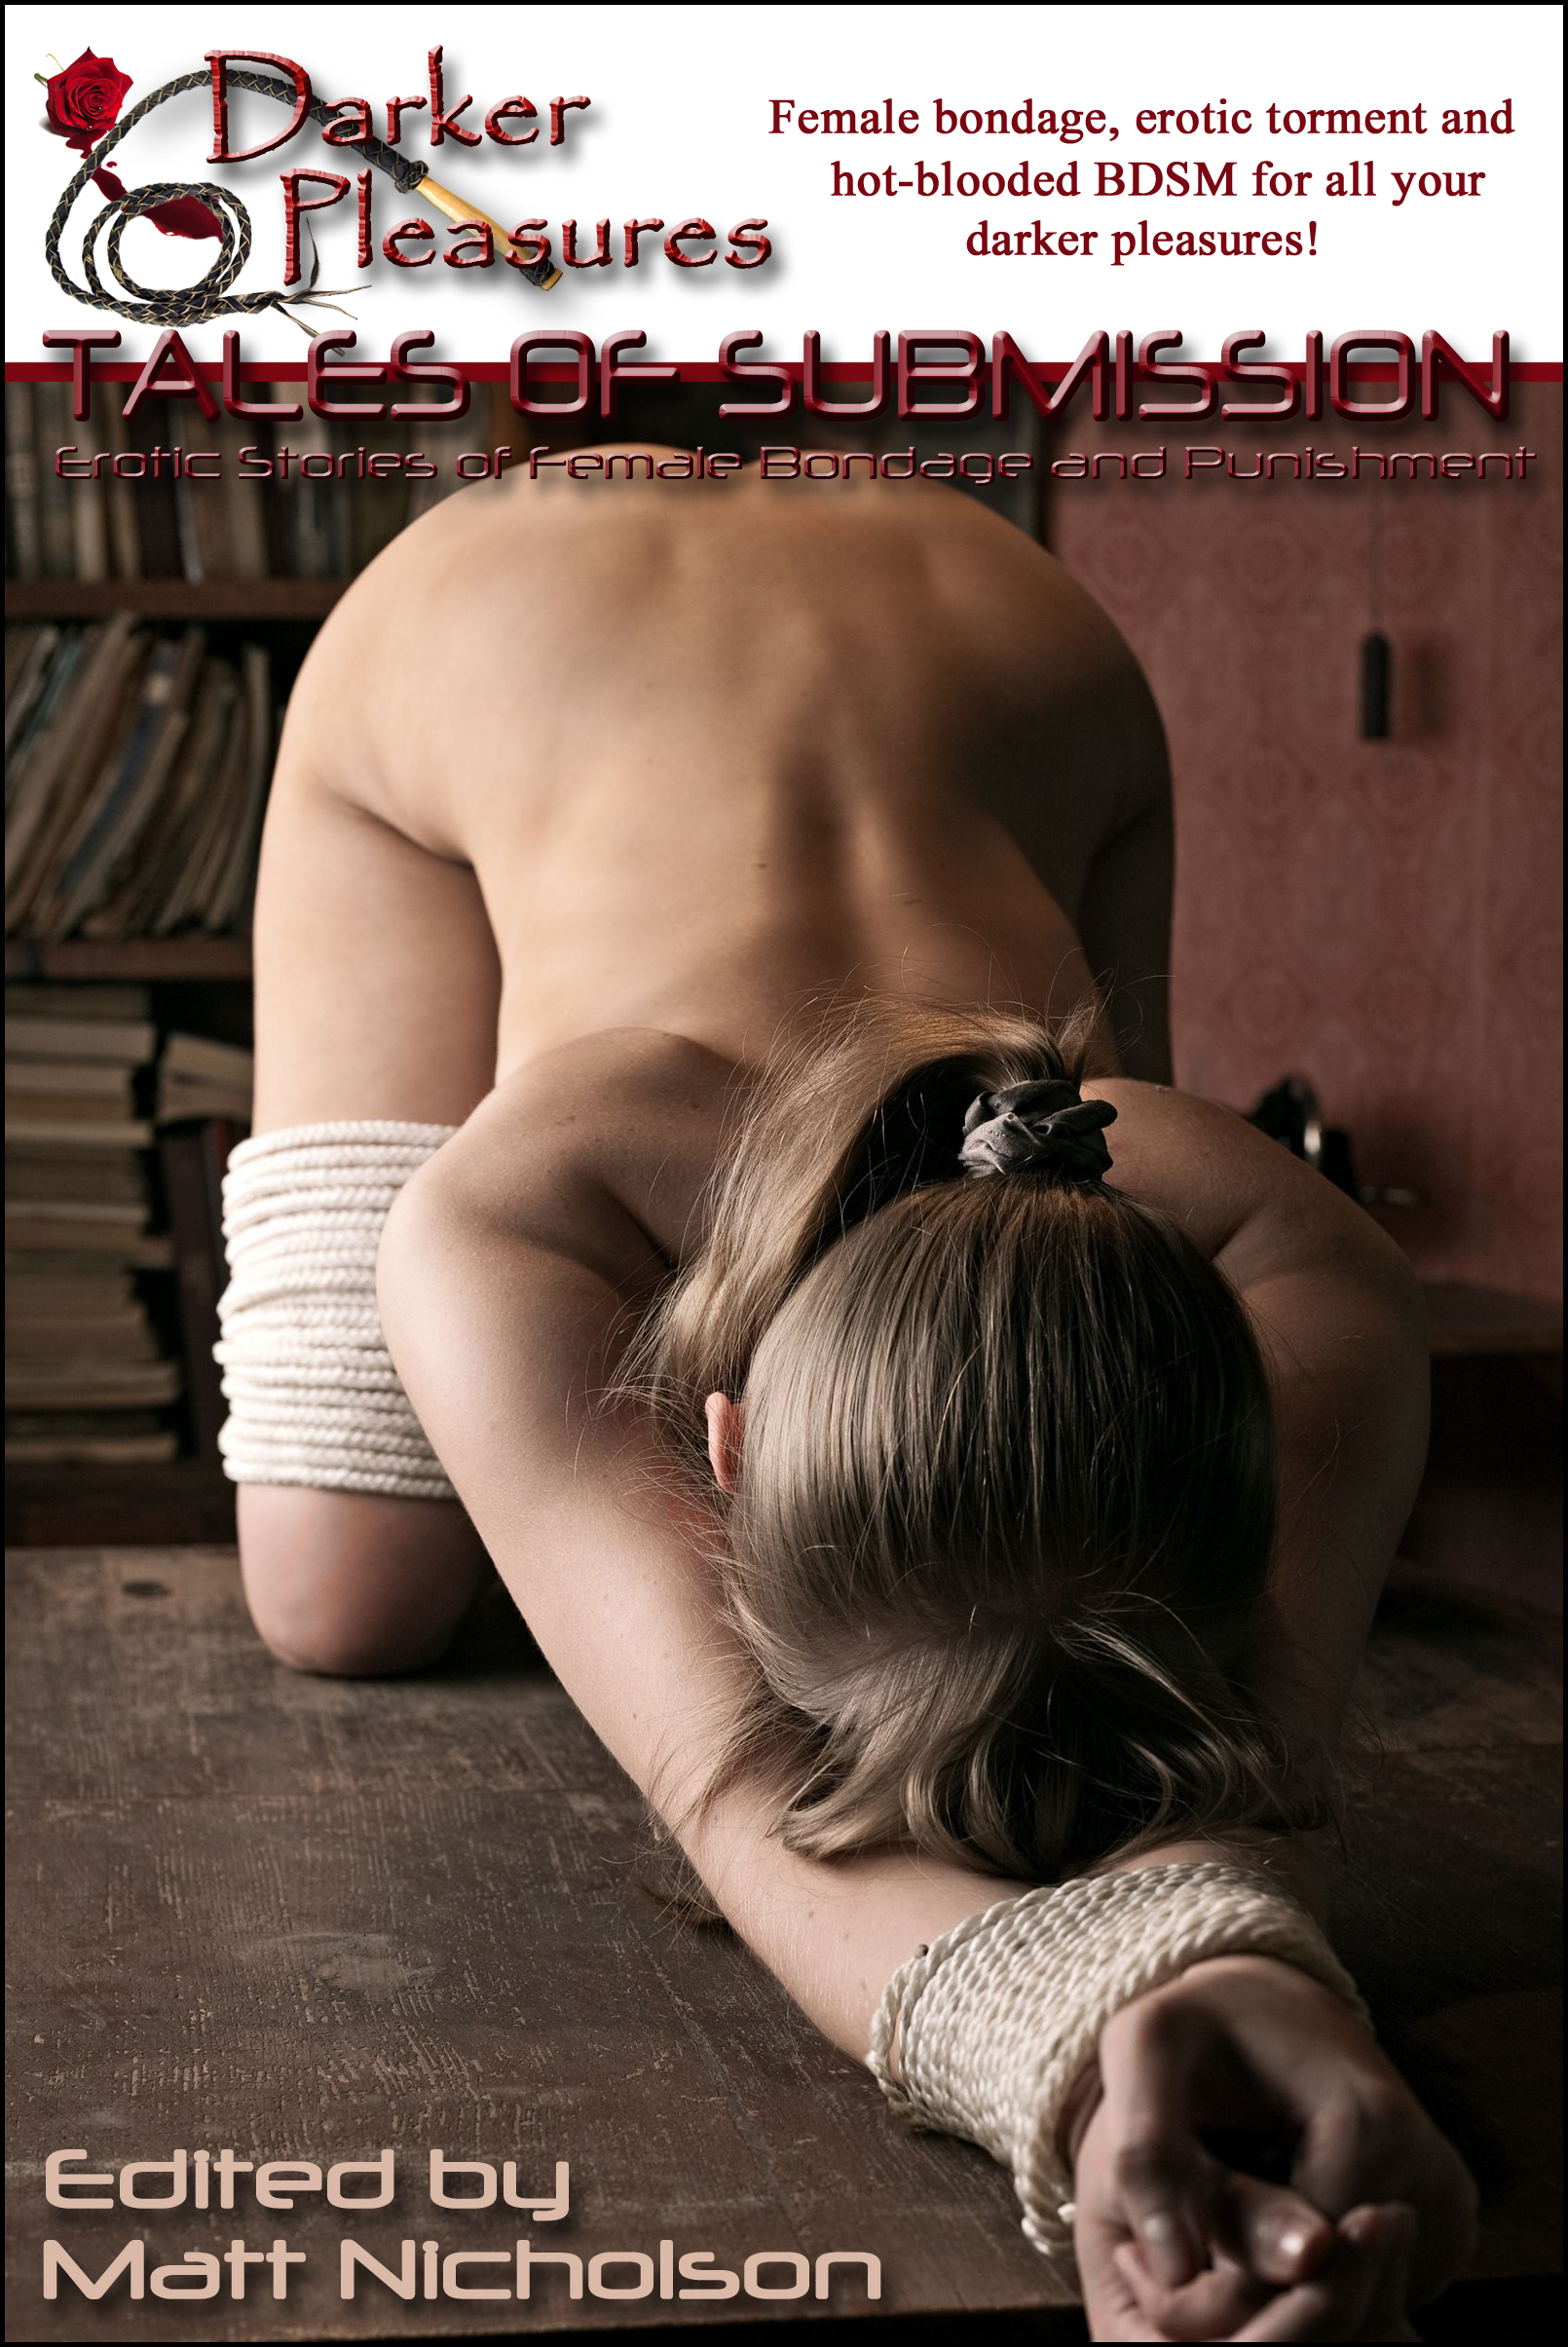 Bdsm female submission erotic stories